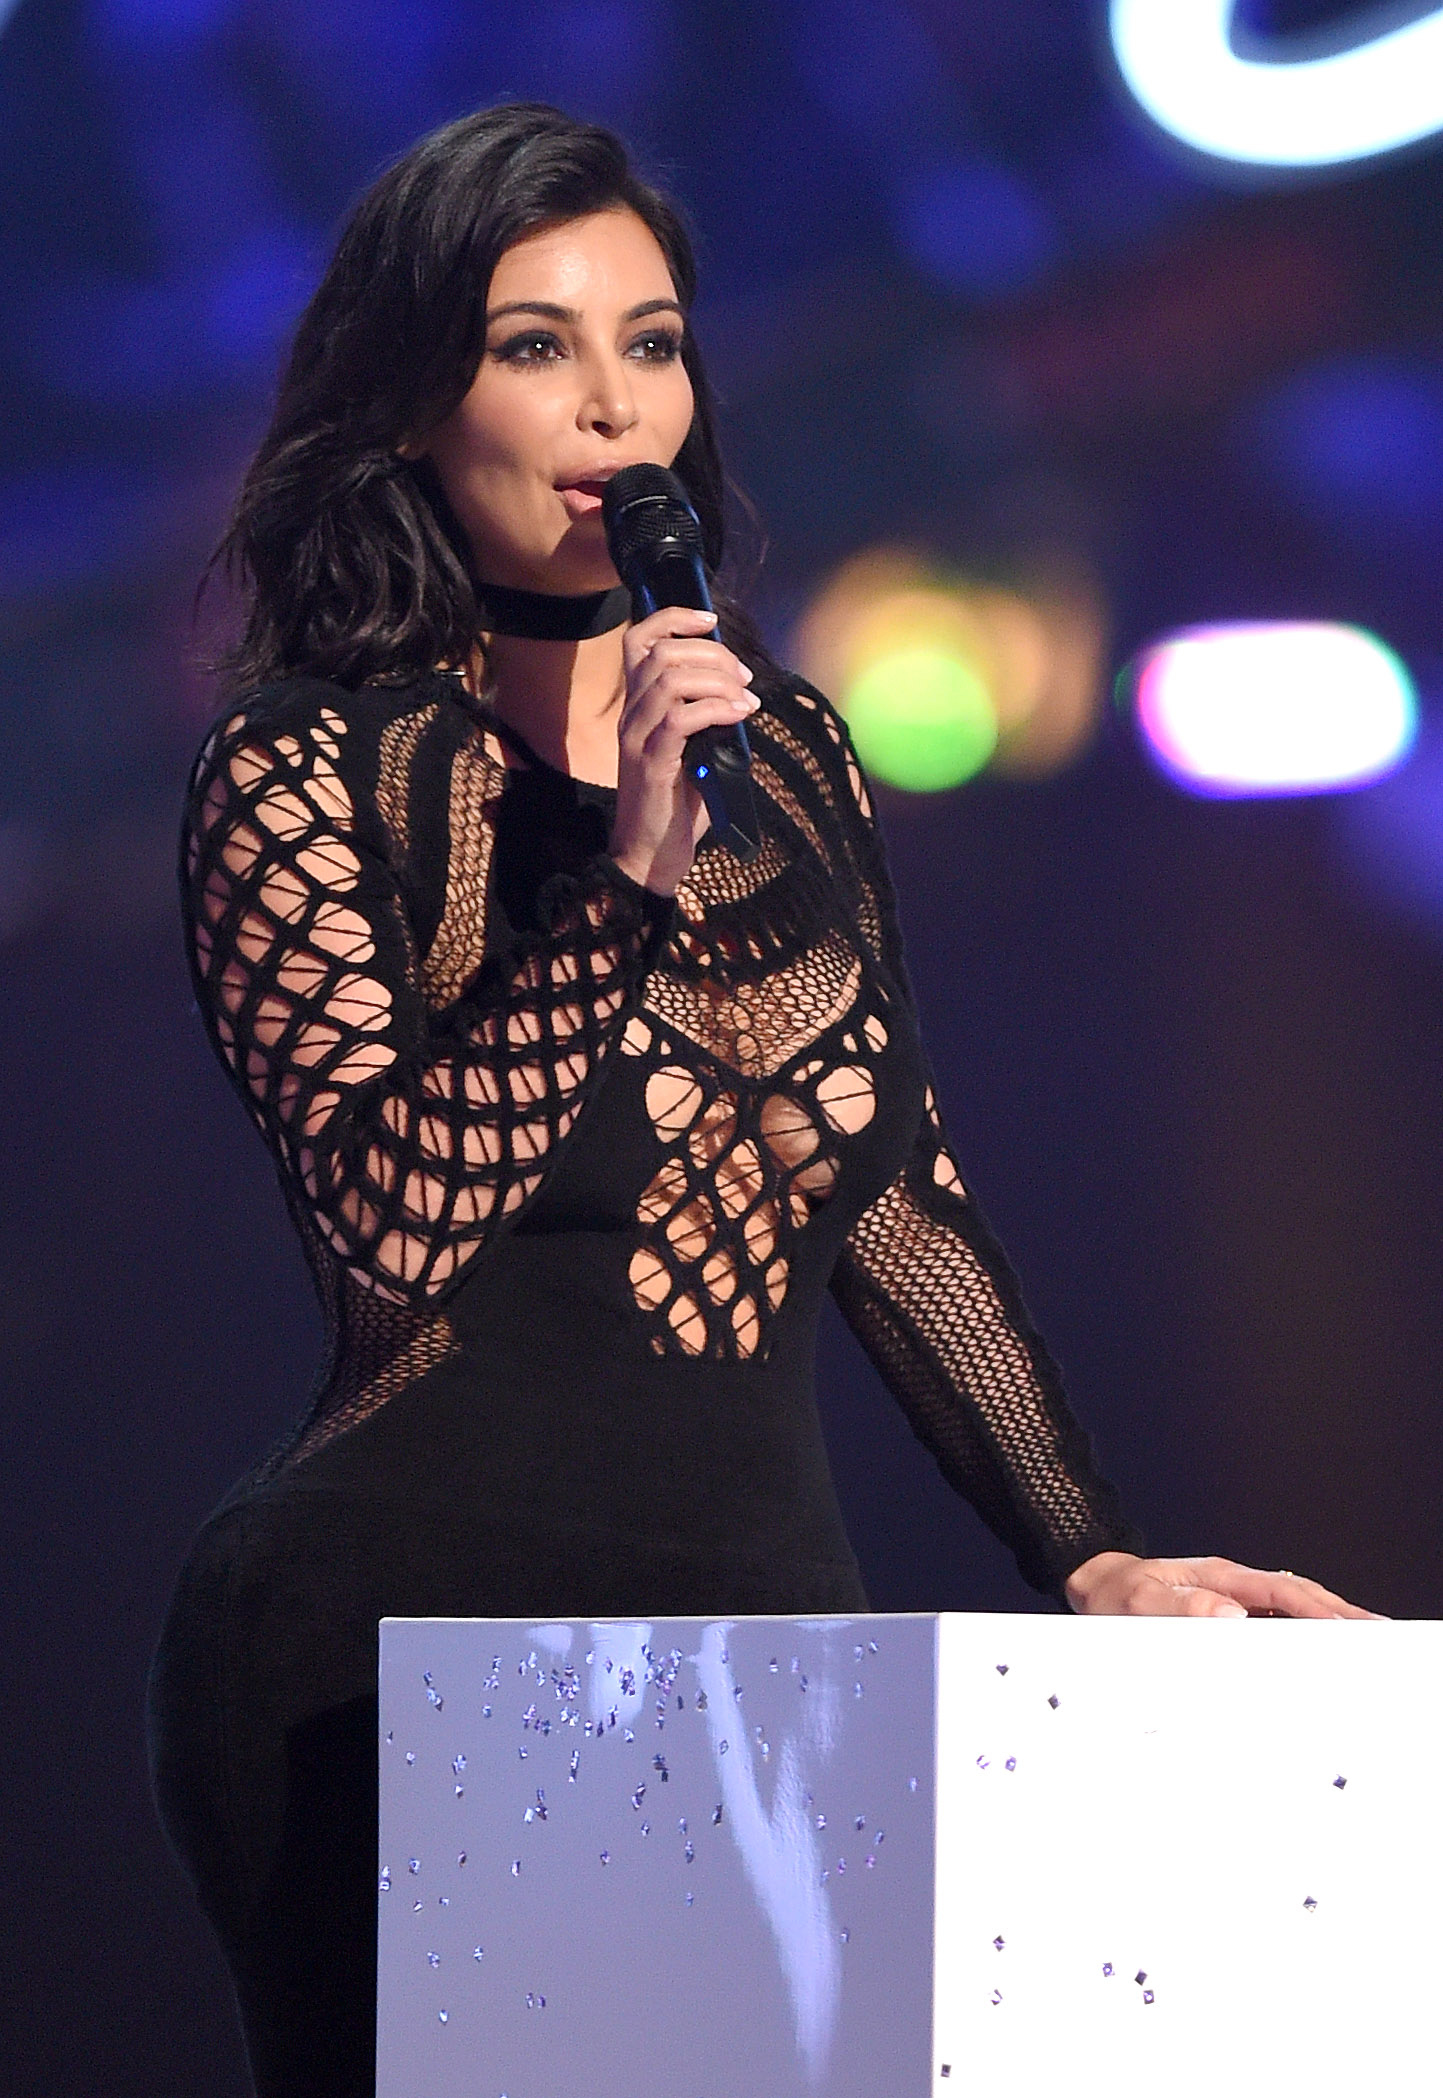 Kim Kardashian on stage at the BRIT Awards 2015 at The O2 Arena on February 25, 2015 in London, England.